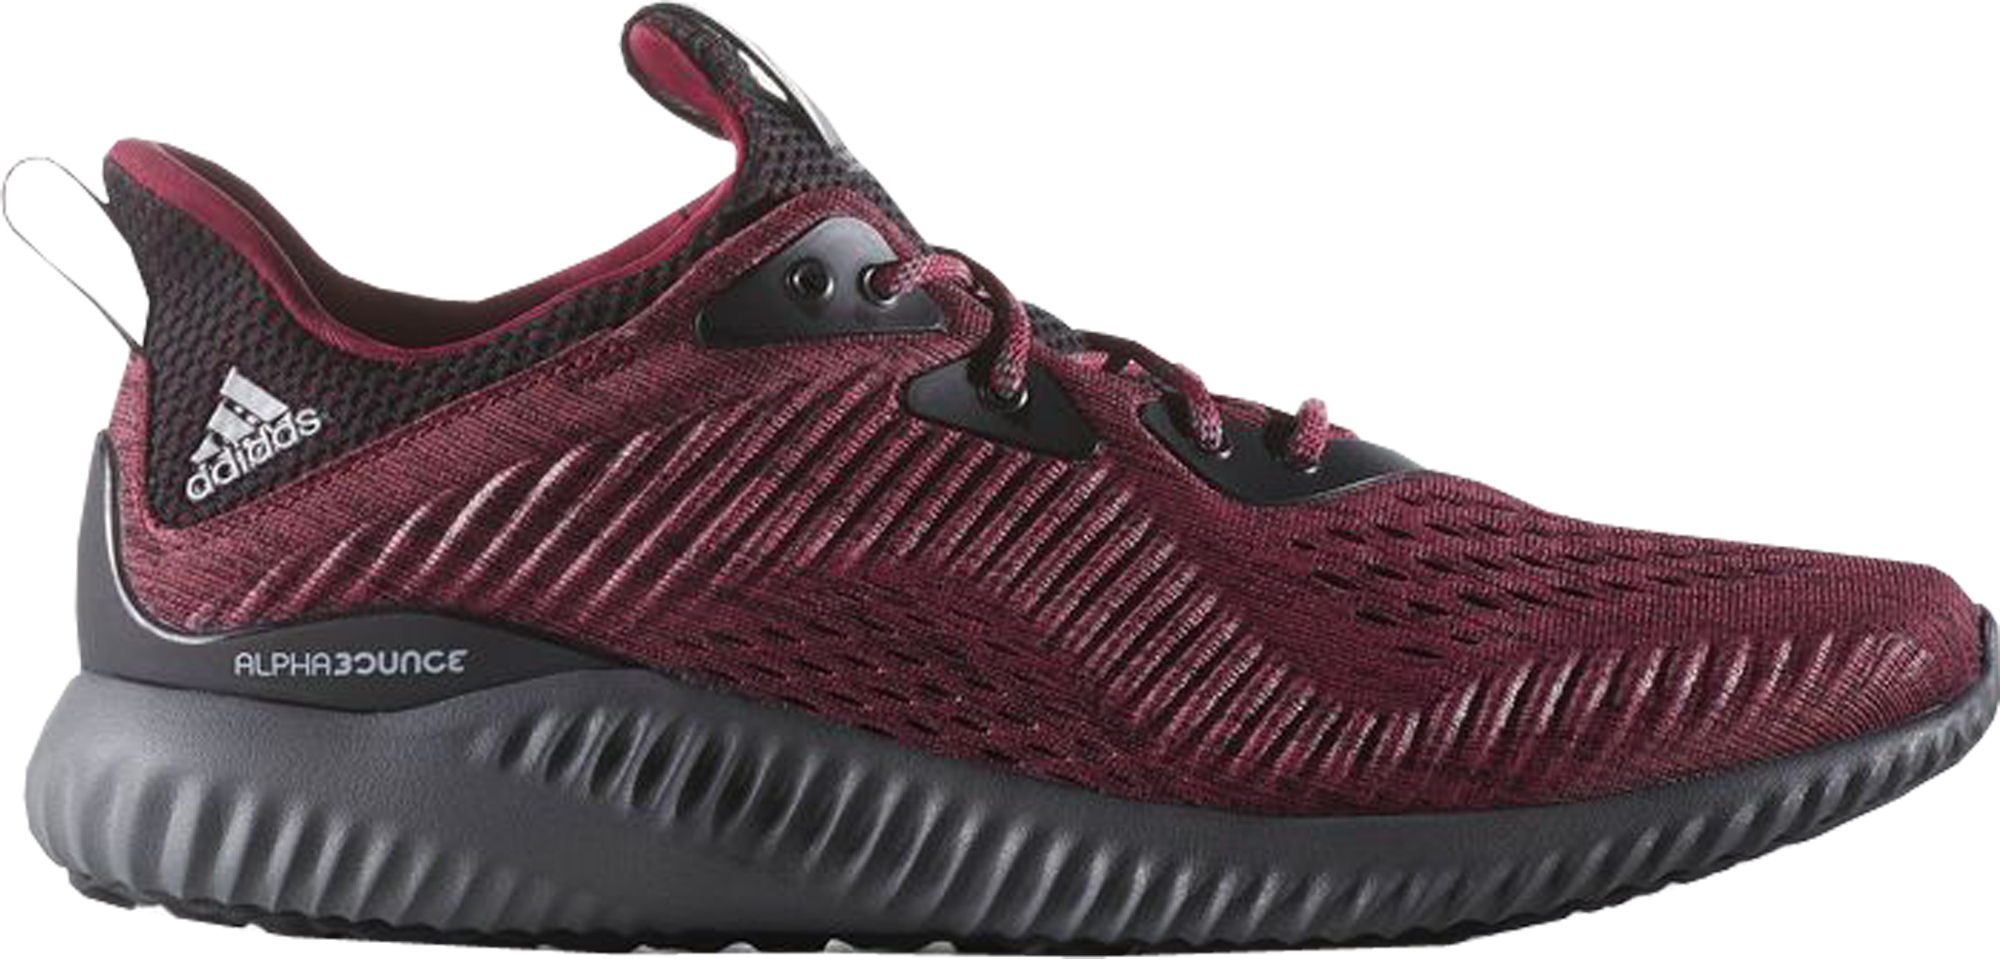 f3f1c455360 ... red white black 8273f 949ca  best price adidas alphabounce mystery ruby  ff249 b7493